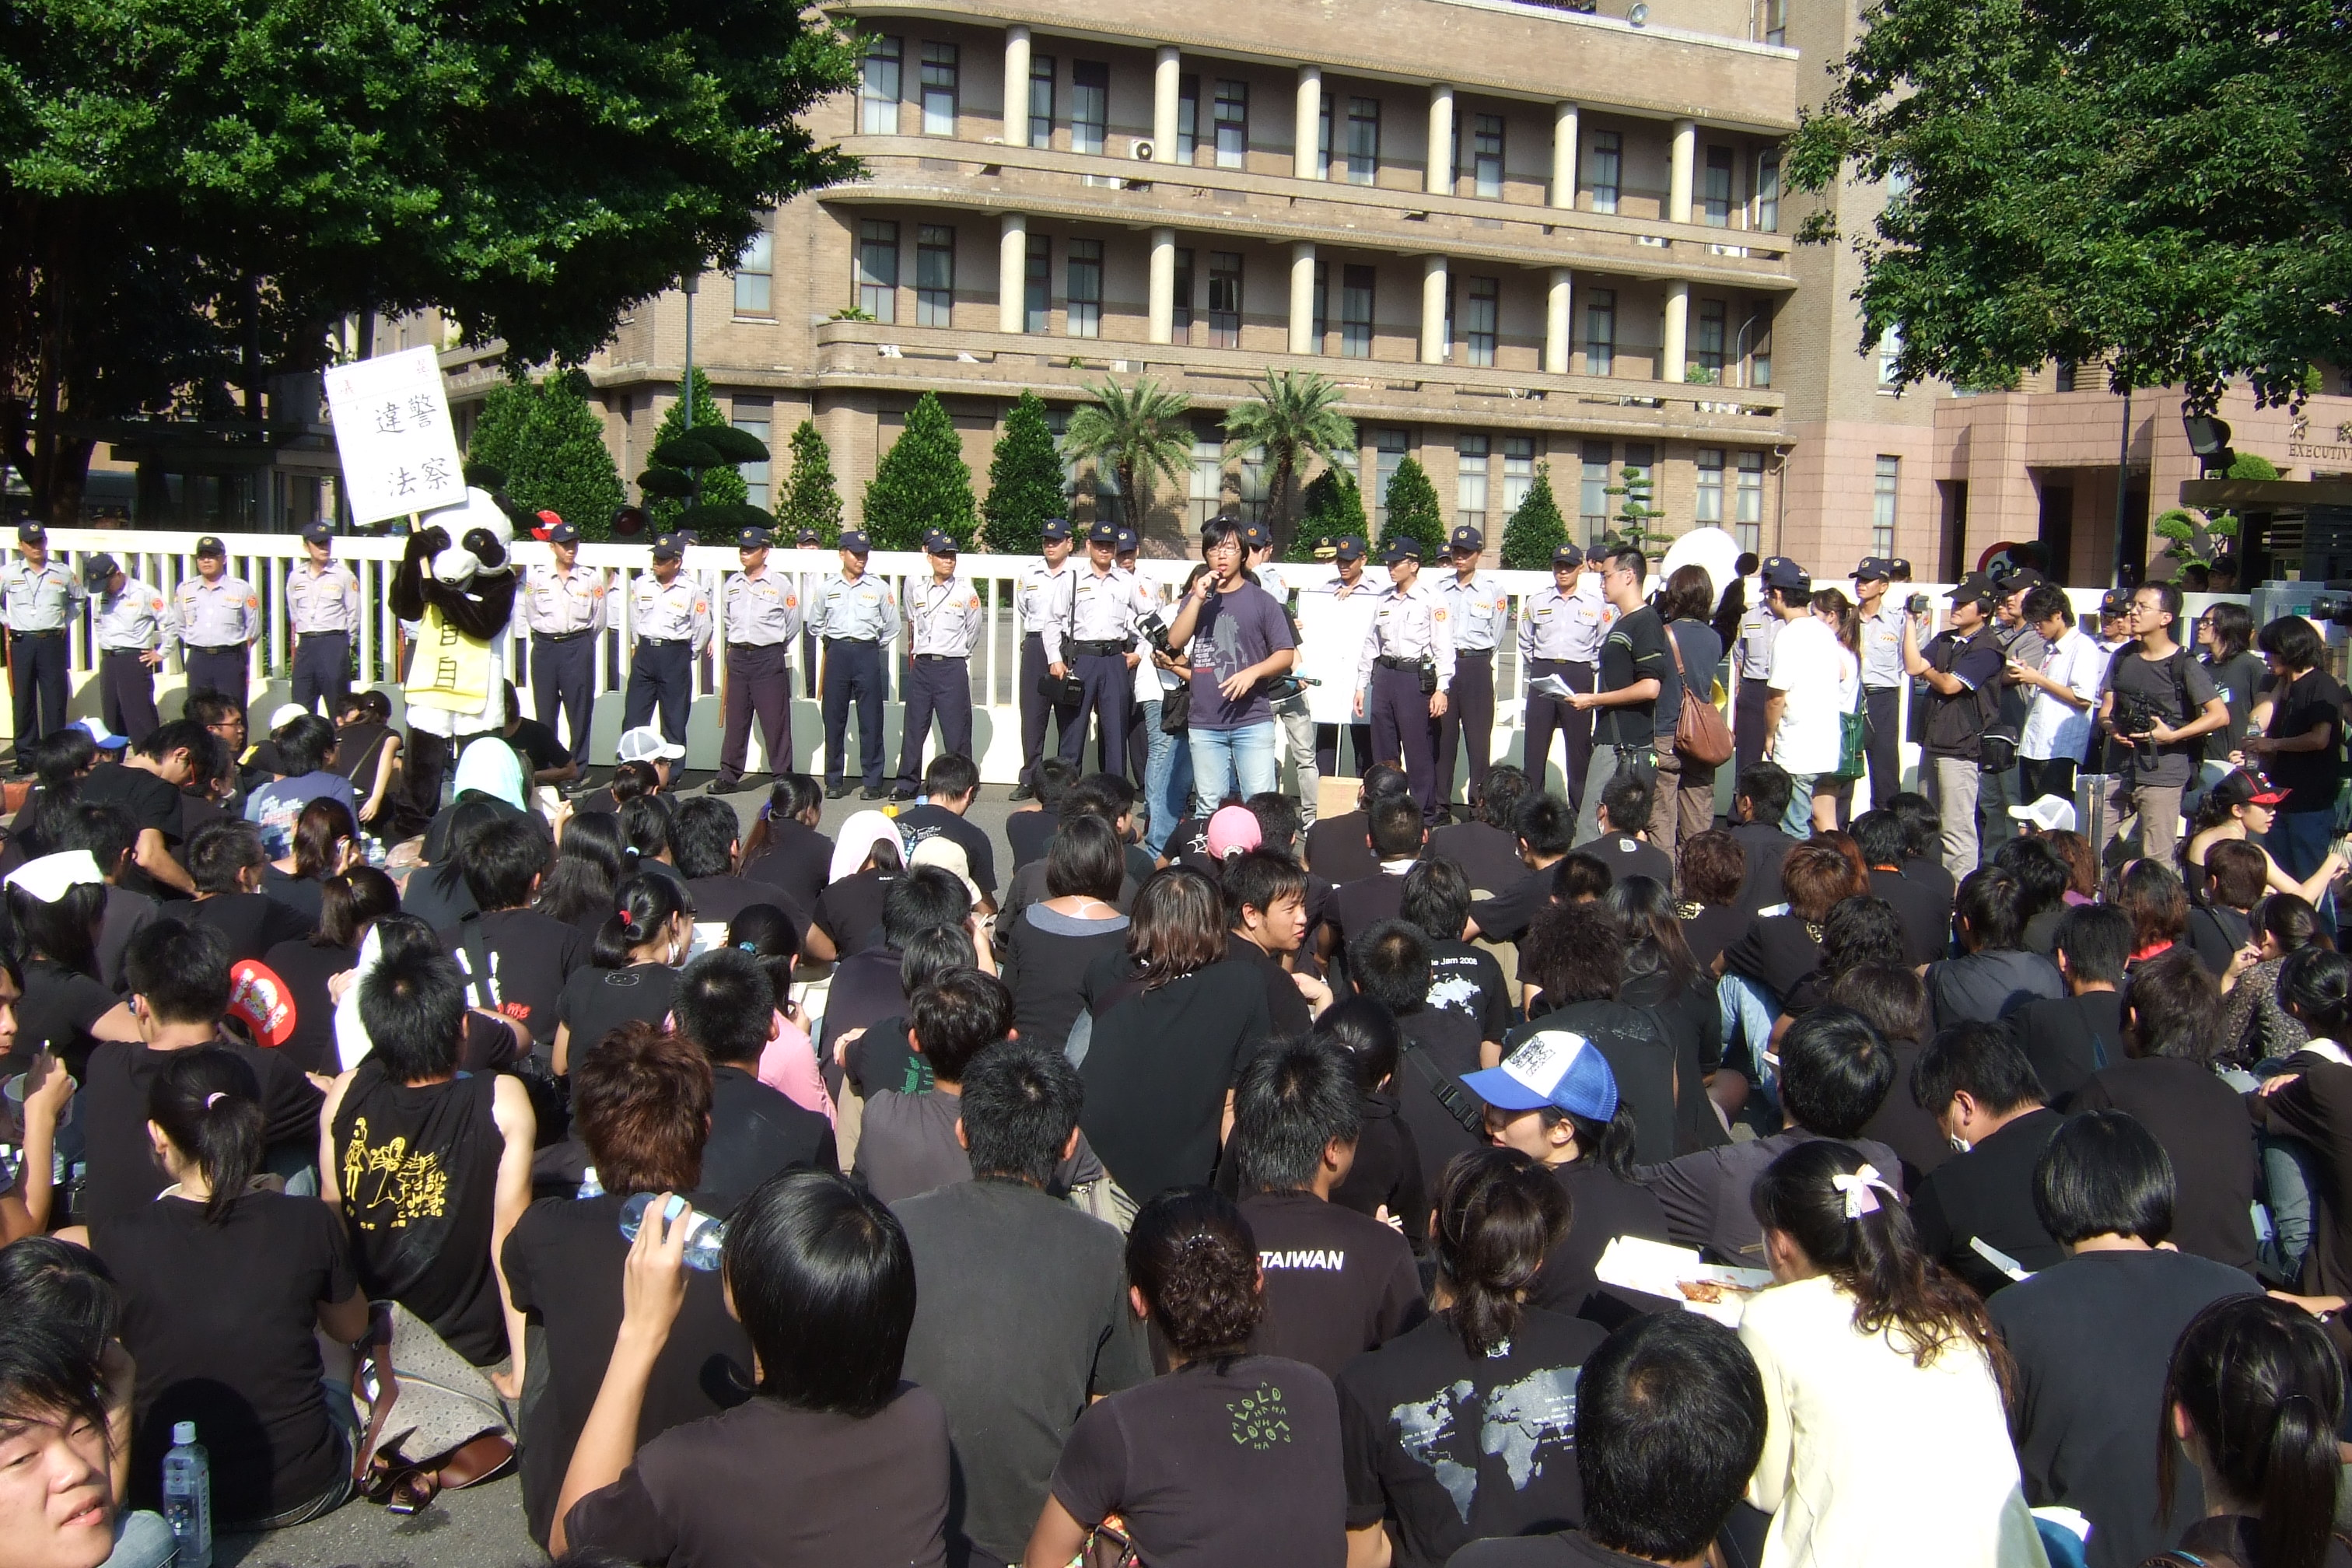 Students staging a sit-in in front of the Executive Yuan.